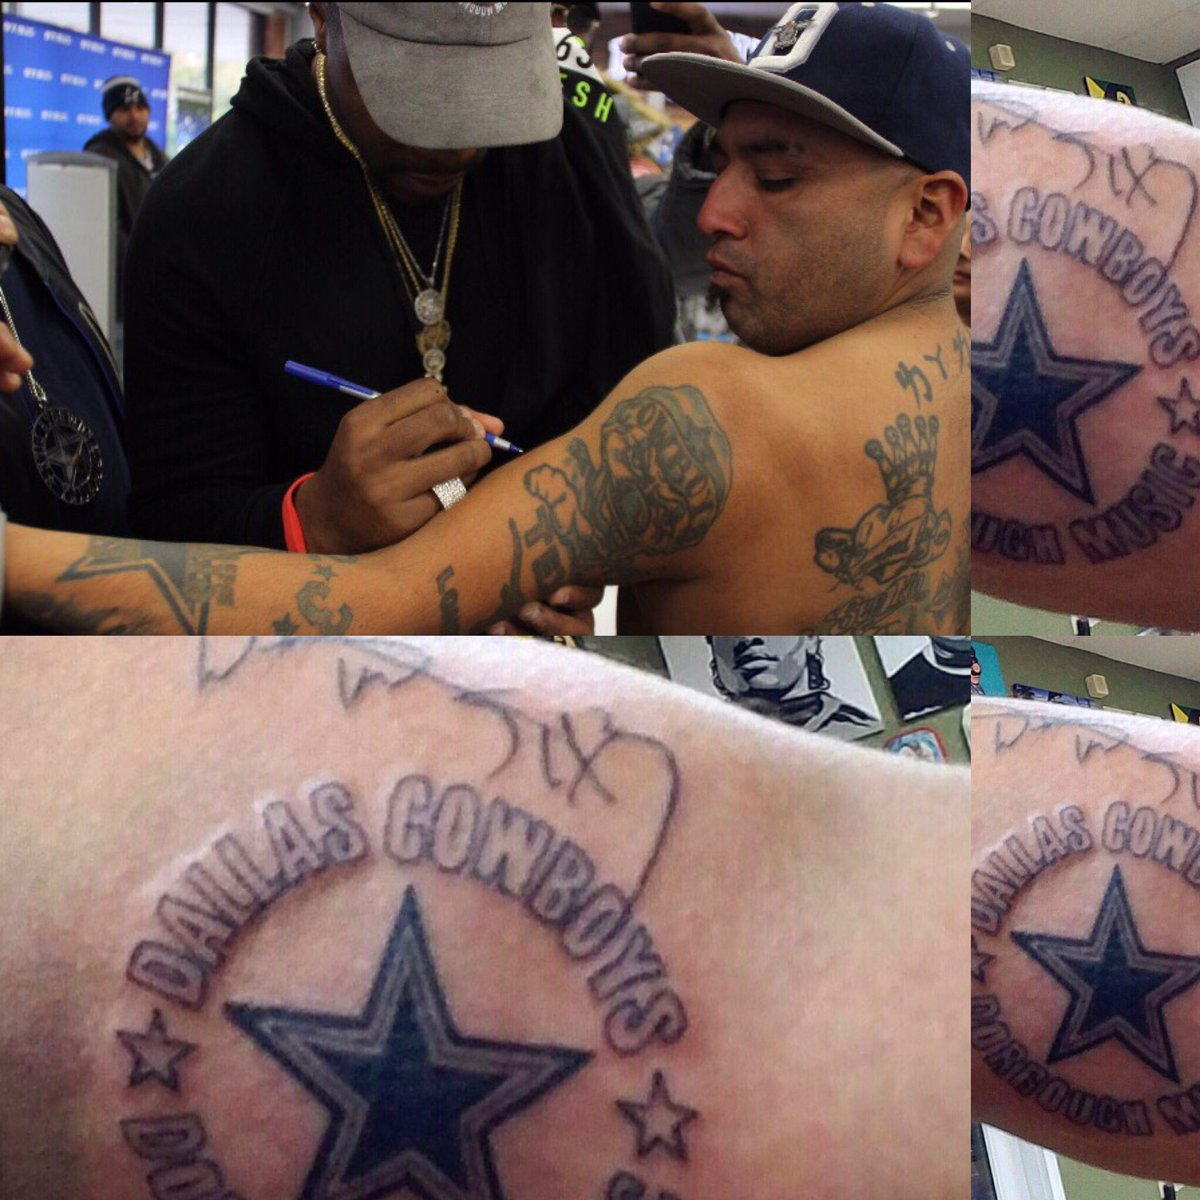 Signed Homie Arm and he went and got it tatted on em. True Fans I respect. 1000 https://t.co/wpkPMlgerK